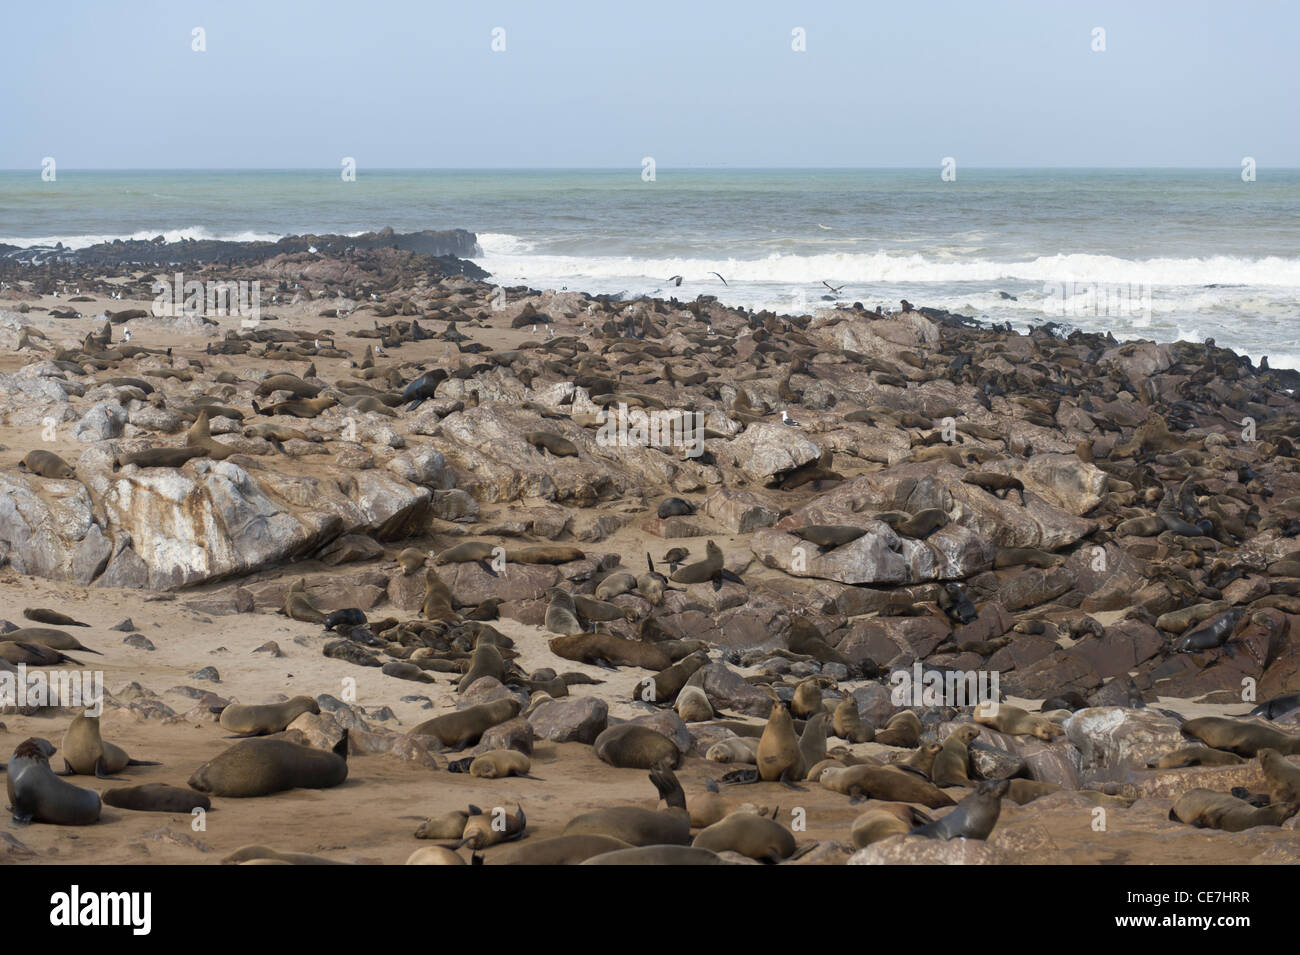 Colony of Cape Fur Seals at Cape Cross, Namibia. - Stock Image